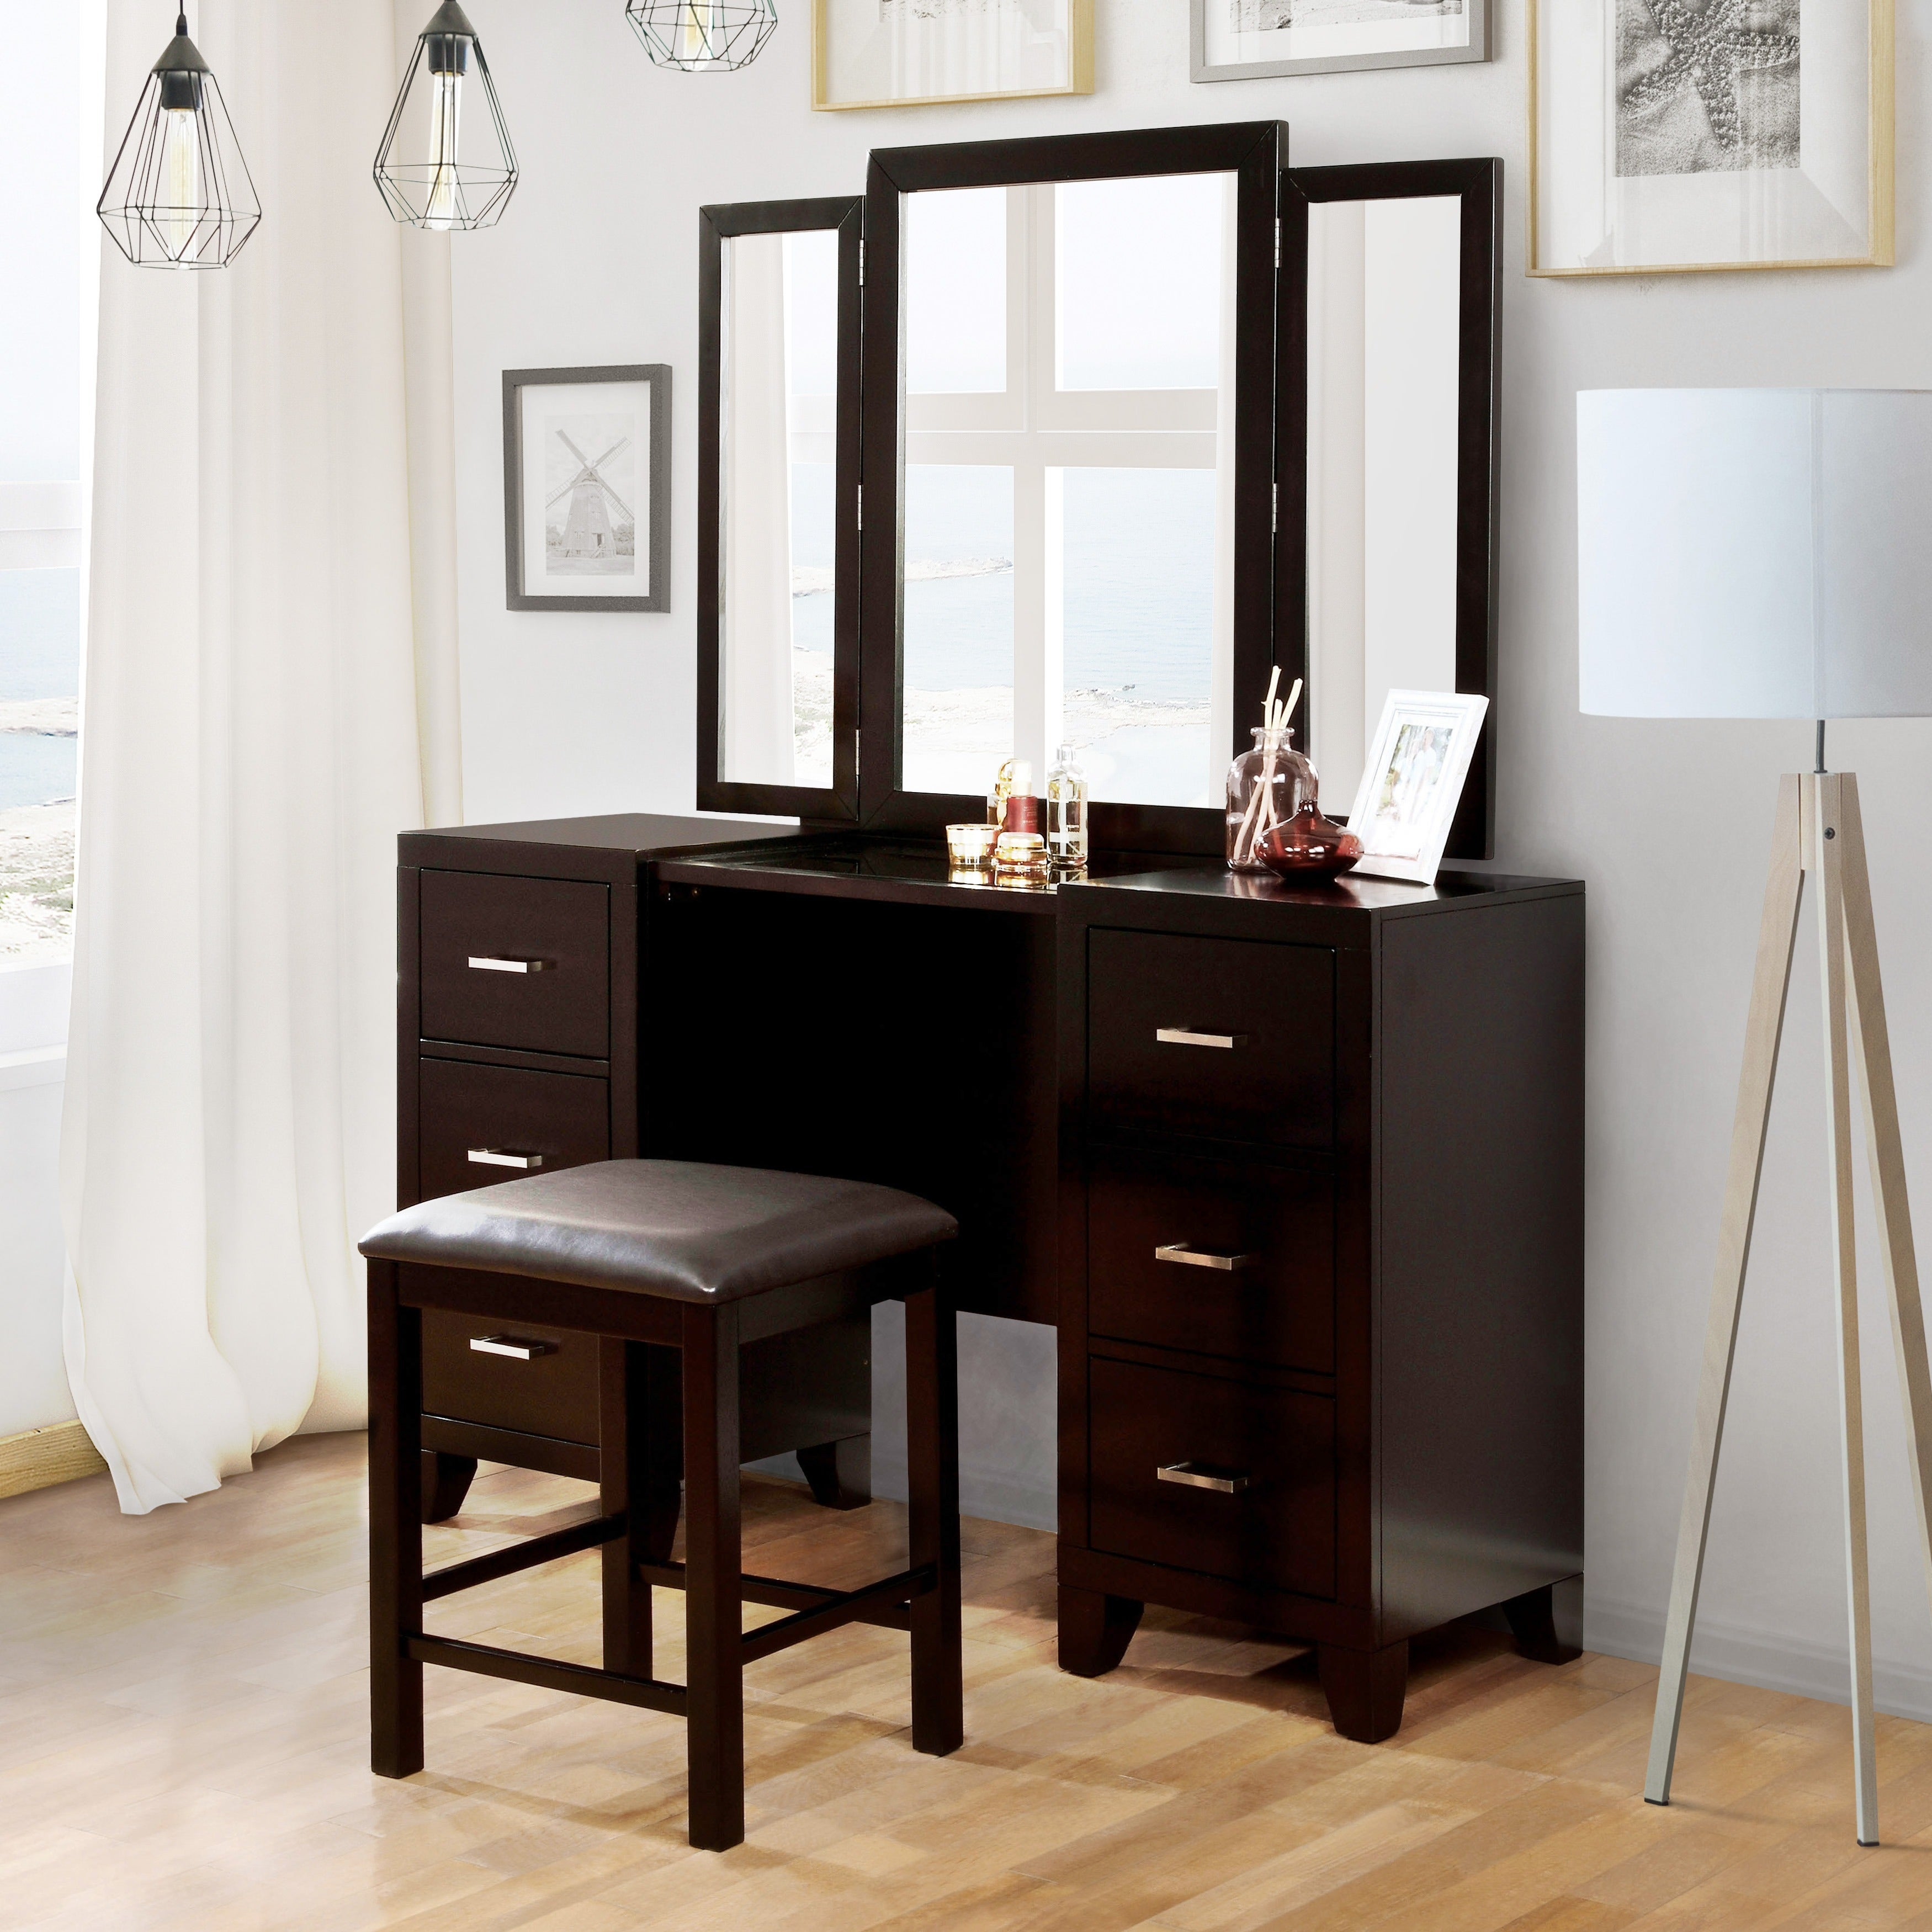 ilana mirror coaster frame vanity wood number with dunk item bright products